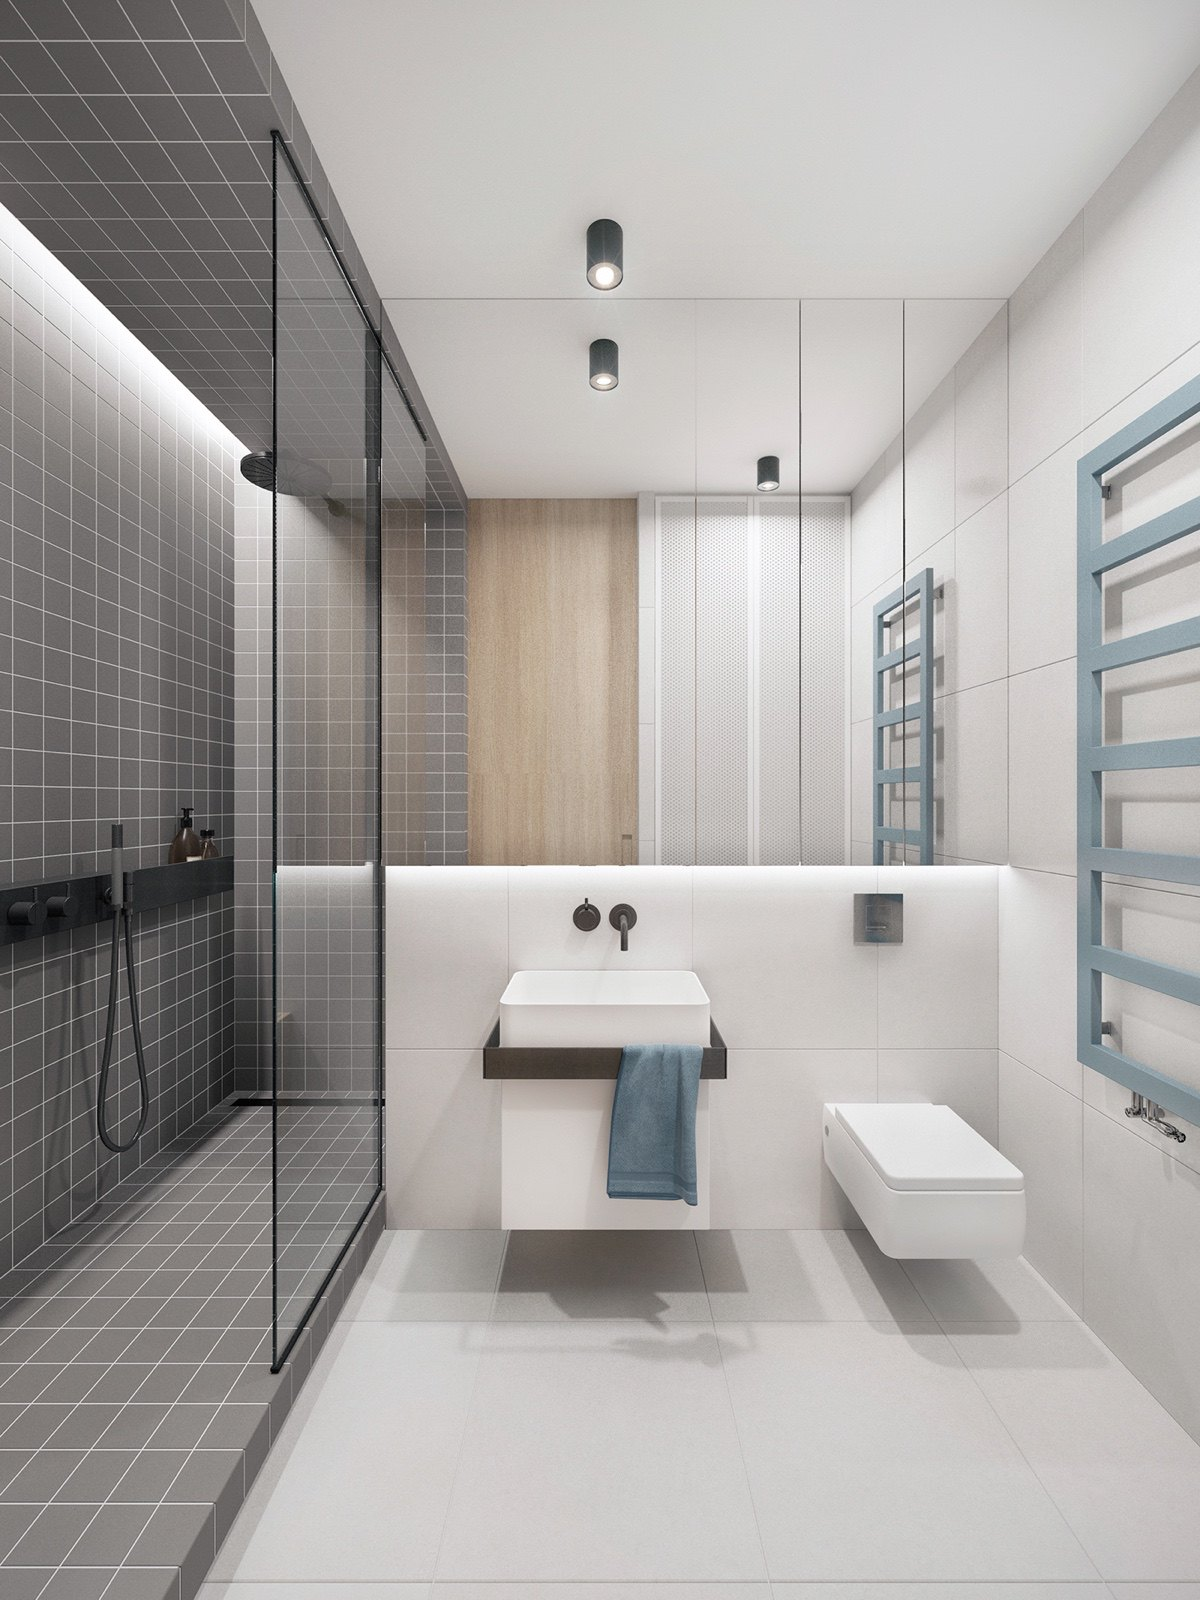 Trendy Bathroom designs Combined With Modern and Geometric